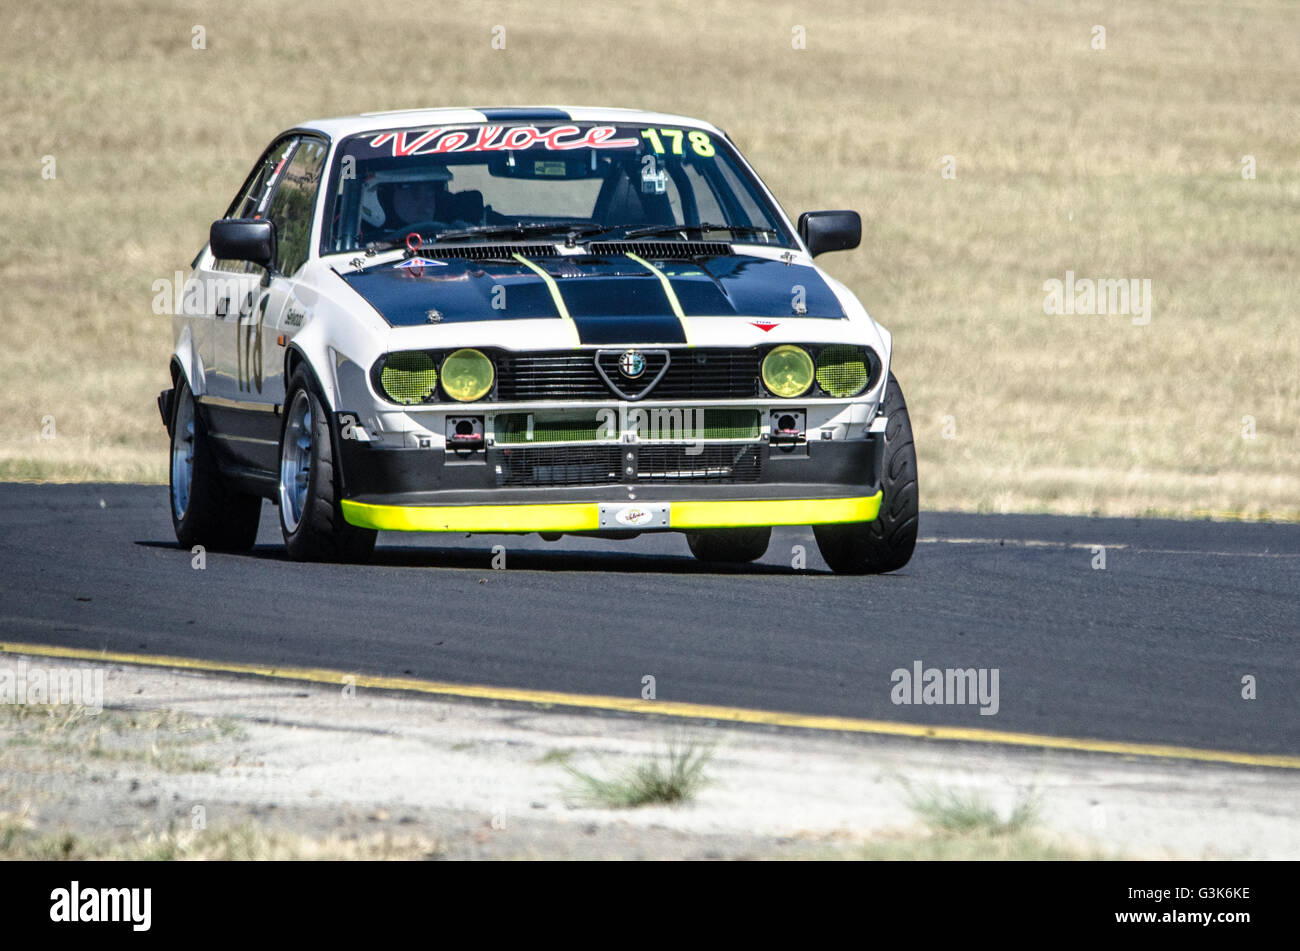 Day 2 Of The New South Wales Motor Race Championships Round 2 Featured A  Wide Variety Of Racing Including Supersports, Sports Sedans, Formula Cars,  ...